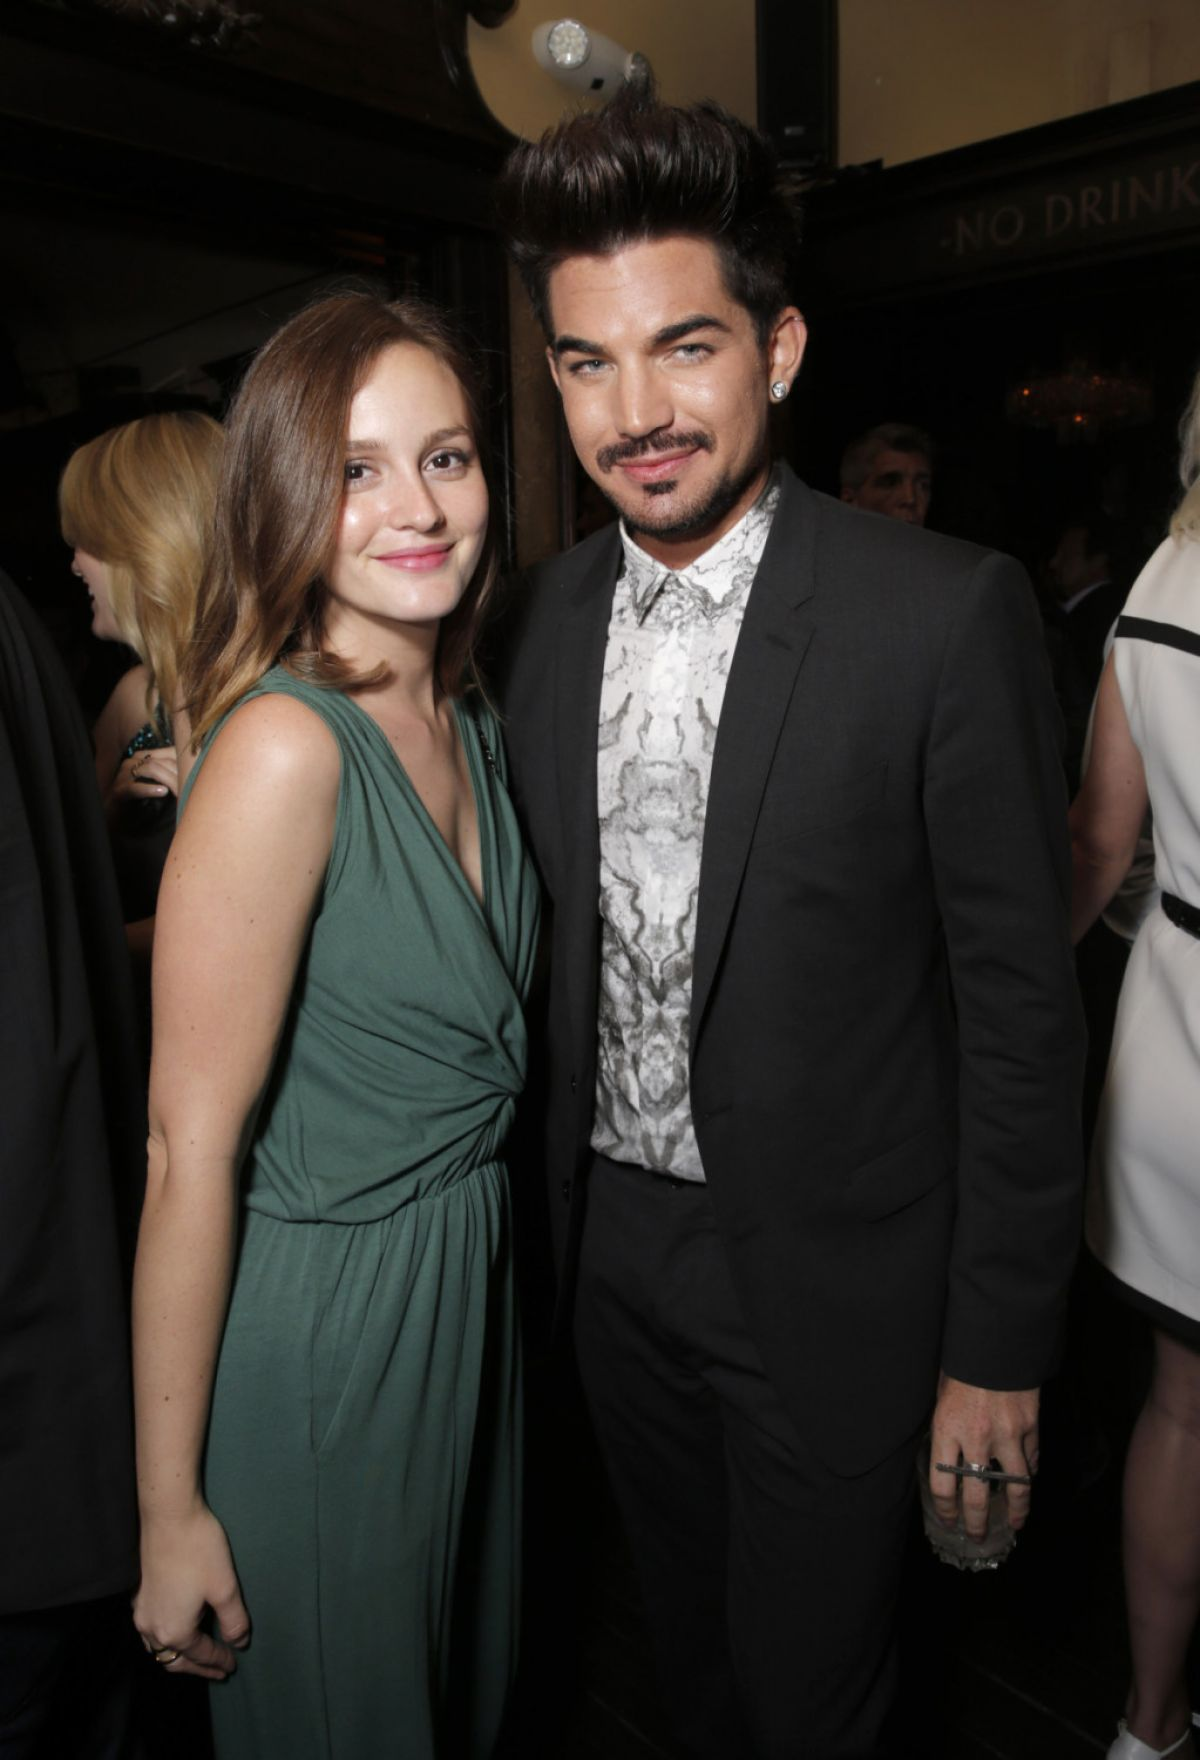 Leighton Meester At The Lovelace After Party In LA